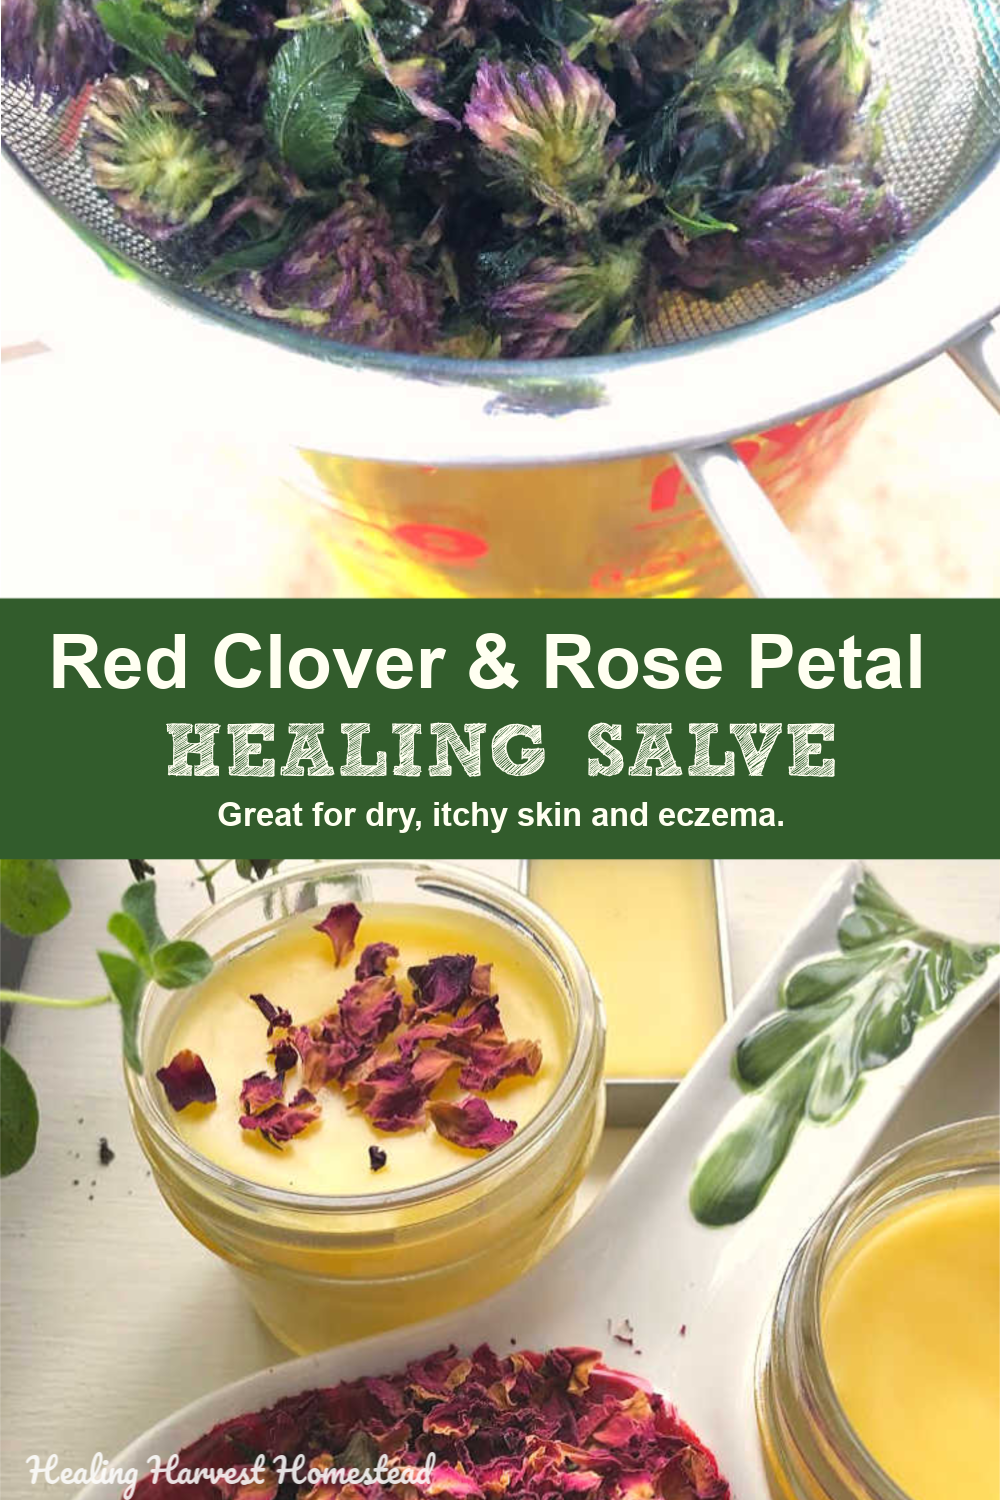 It's easy to make your own healing home remedy for the skin. This salve contains a mix of herbs and essential oils that can provide relief from eczema and dry, itchy cold weather skin. Learn to make an herb infused oil, turn it into salve, and be chemical free! You'll love this soothing eczema & psoriasis salve recipe. #healingsalve #eczema #salve #healing #homeremedy #recipe #healing #howtomake #herbal #healingharvesthomestead #naturalhealing